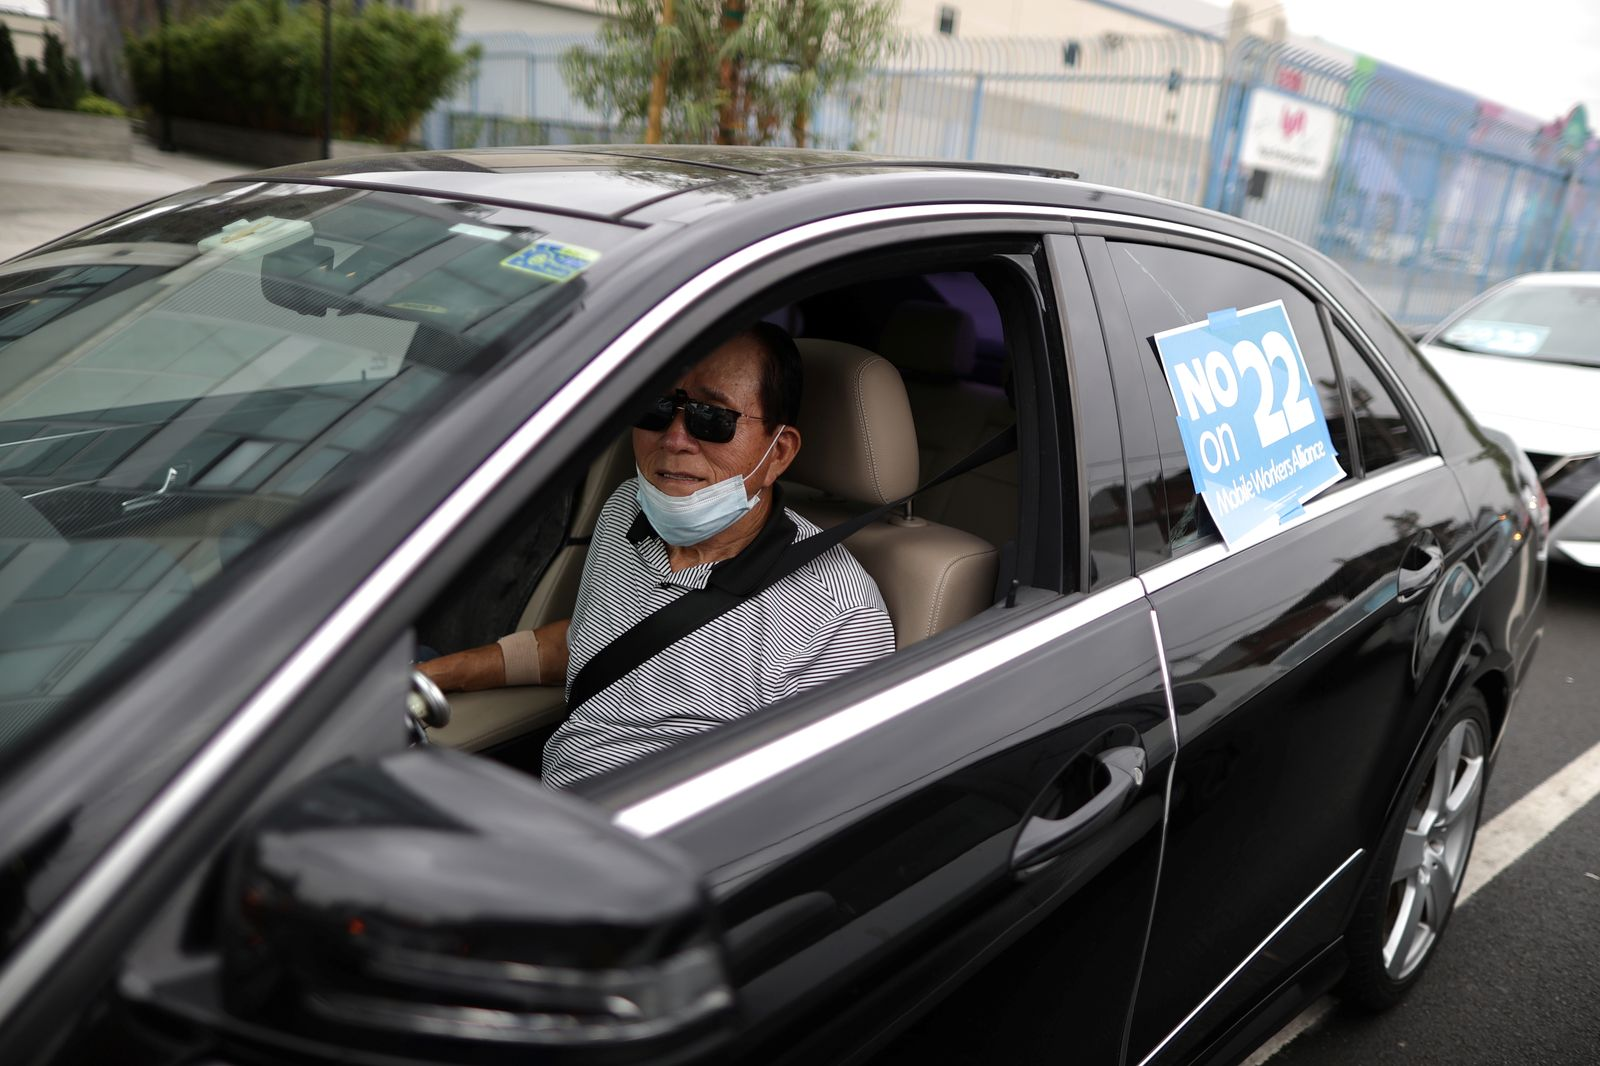 Rideshare driver Peter Hong, 67, joins a car caravan at a protest by Uber and Lyft drivers against the upcoming California Proposition 22 ballot measure, which would exempt rideshare companies from classifying their drivers as employees, in Los Angeles